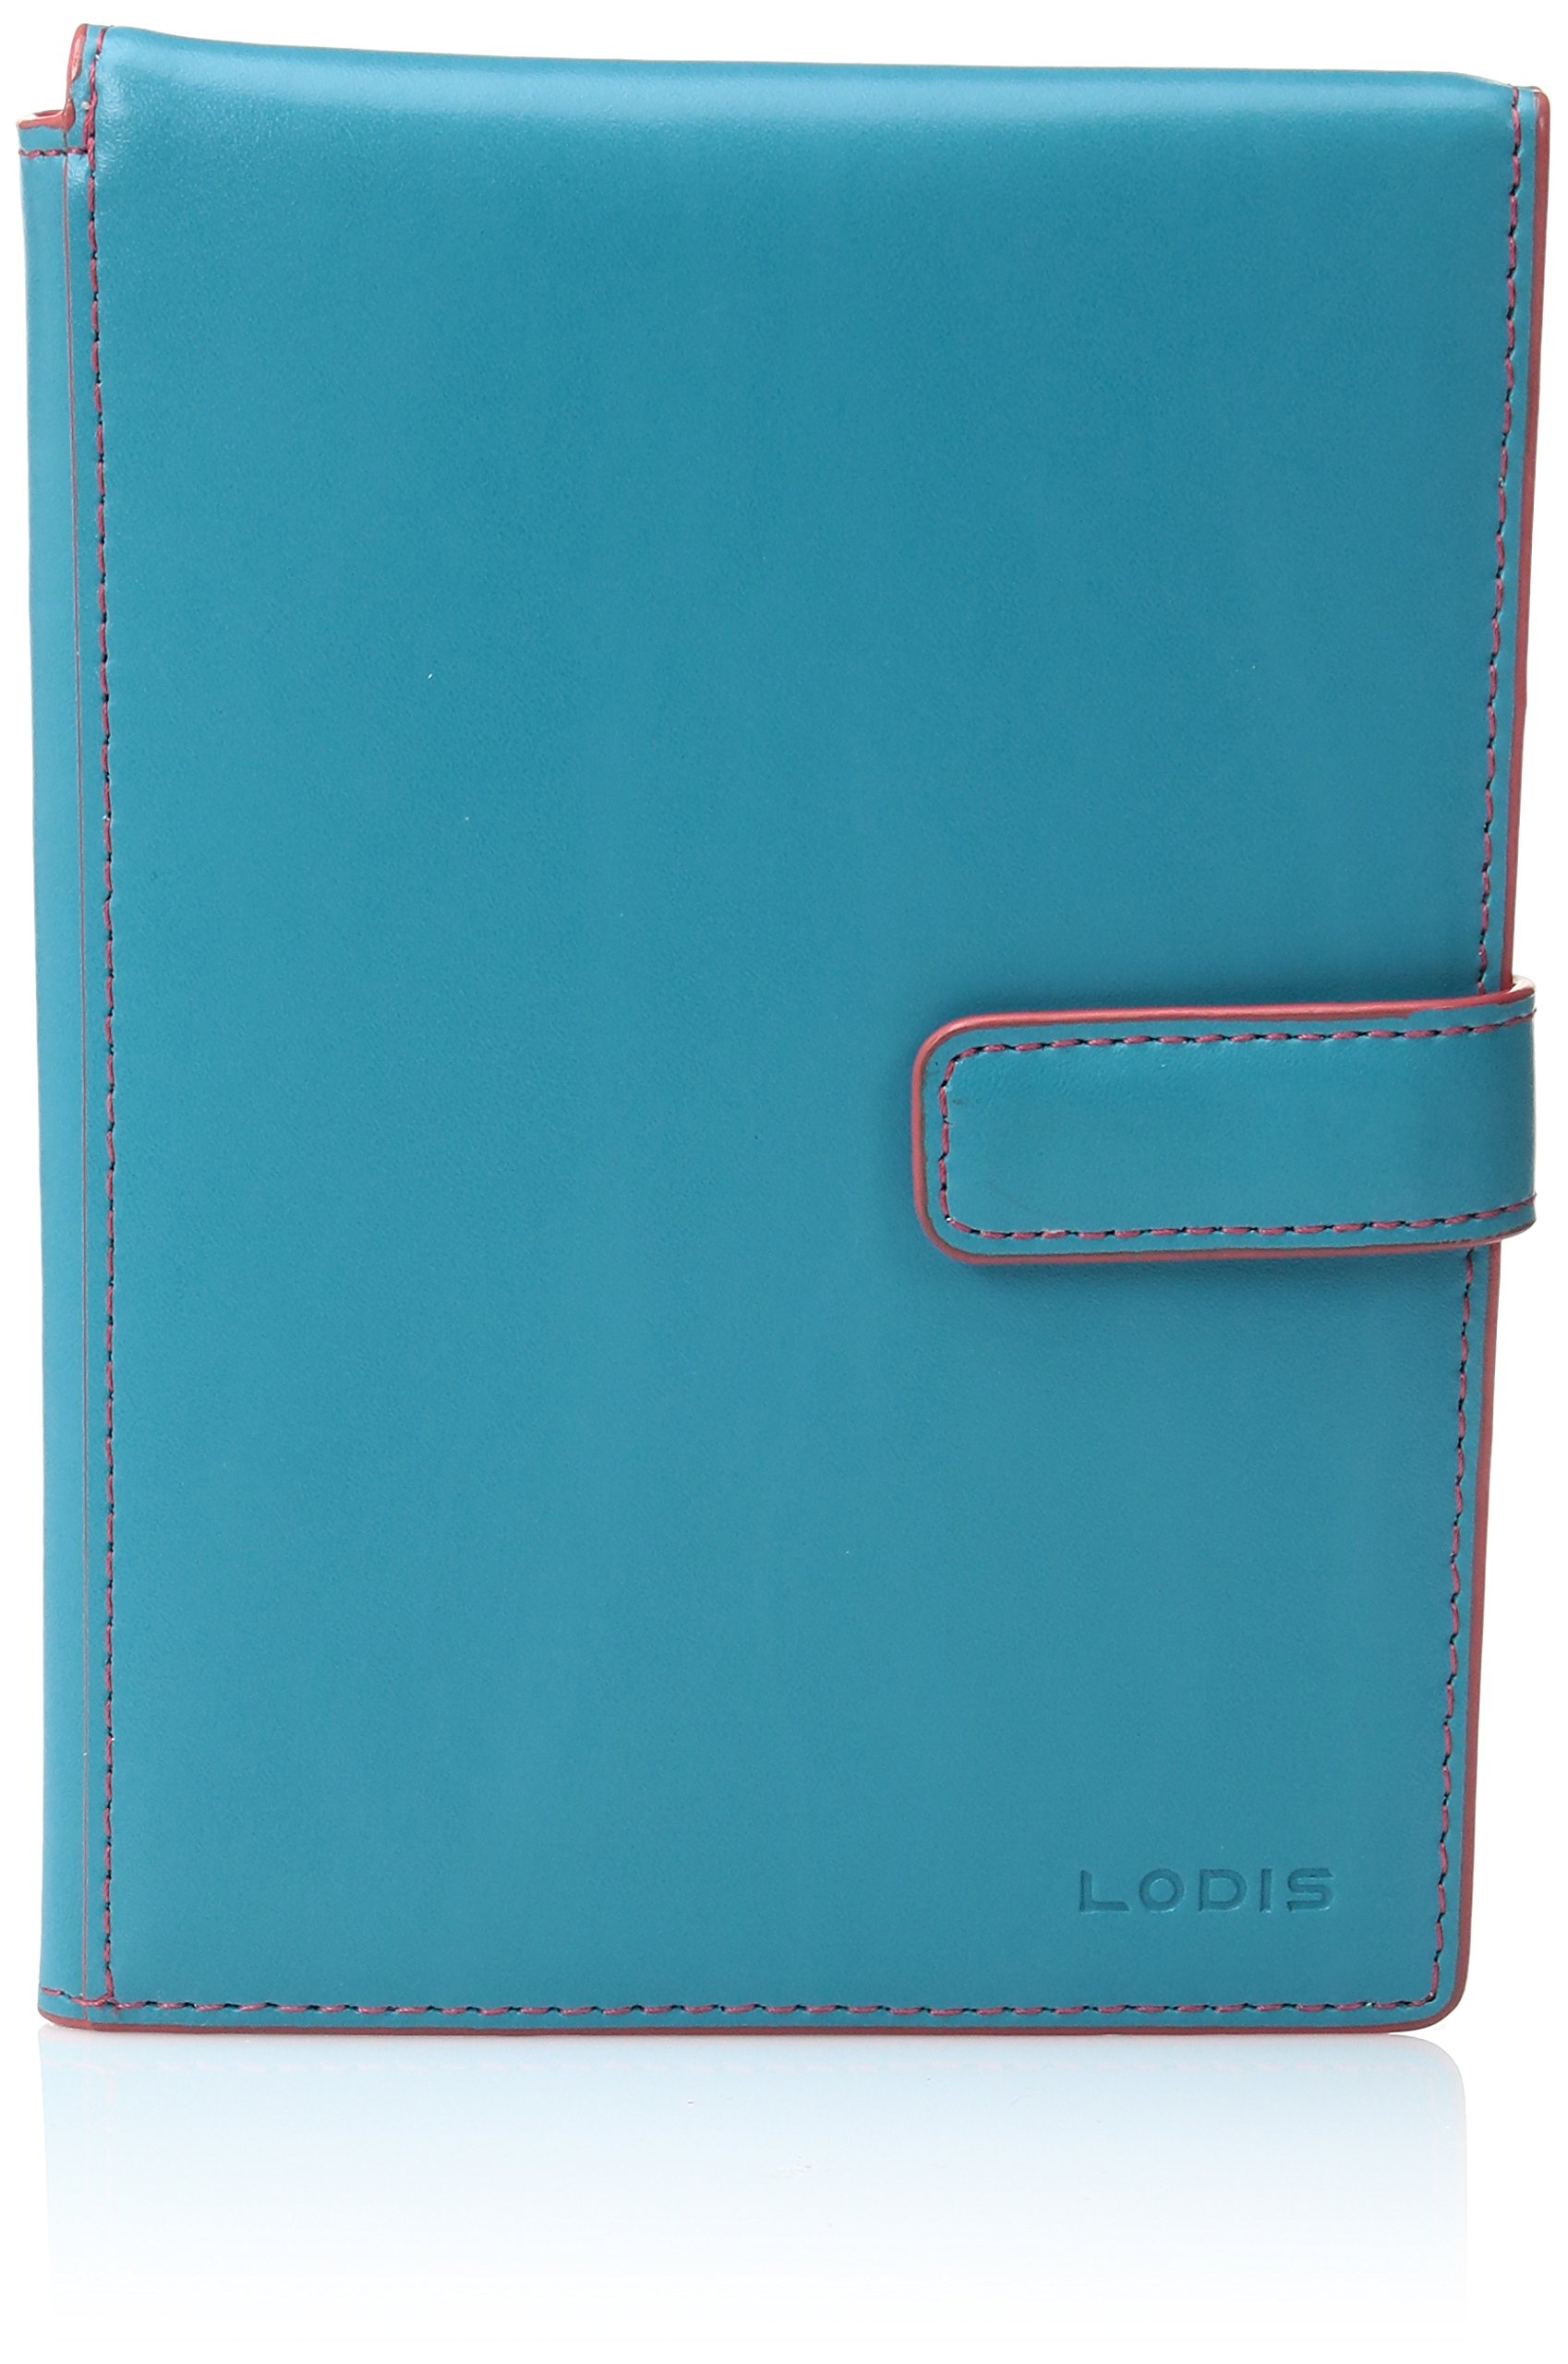 Audrey Pportwltwtktflp Tsc Pass Case, Turquoise/Coral, One Size by Lodis